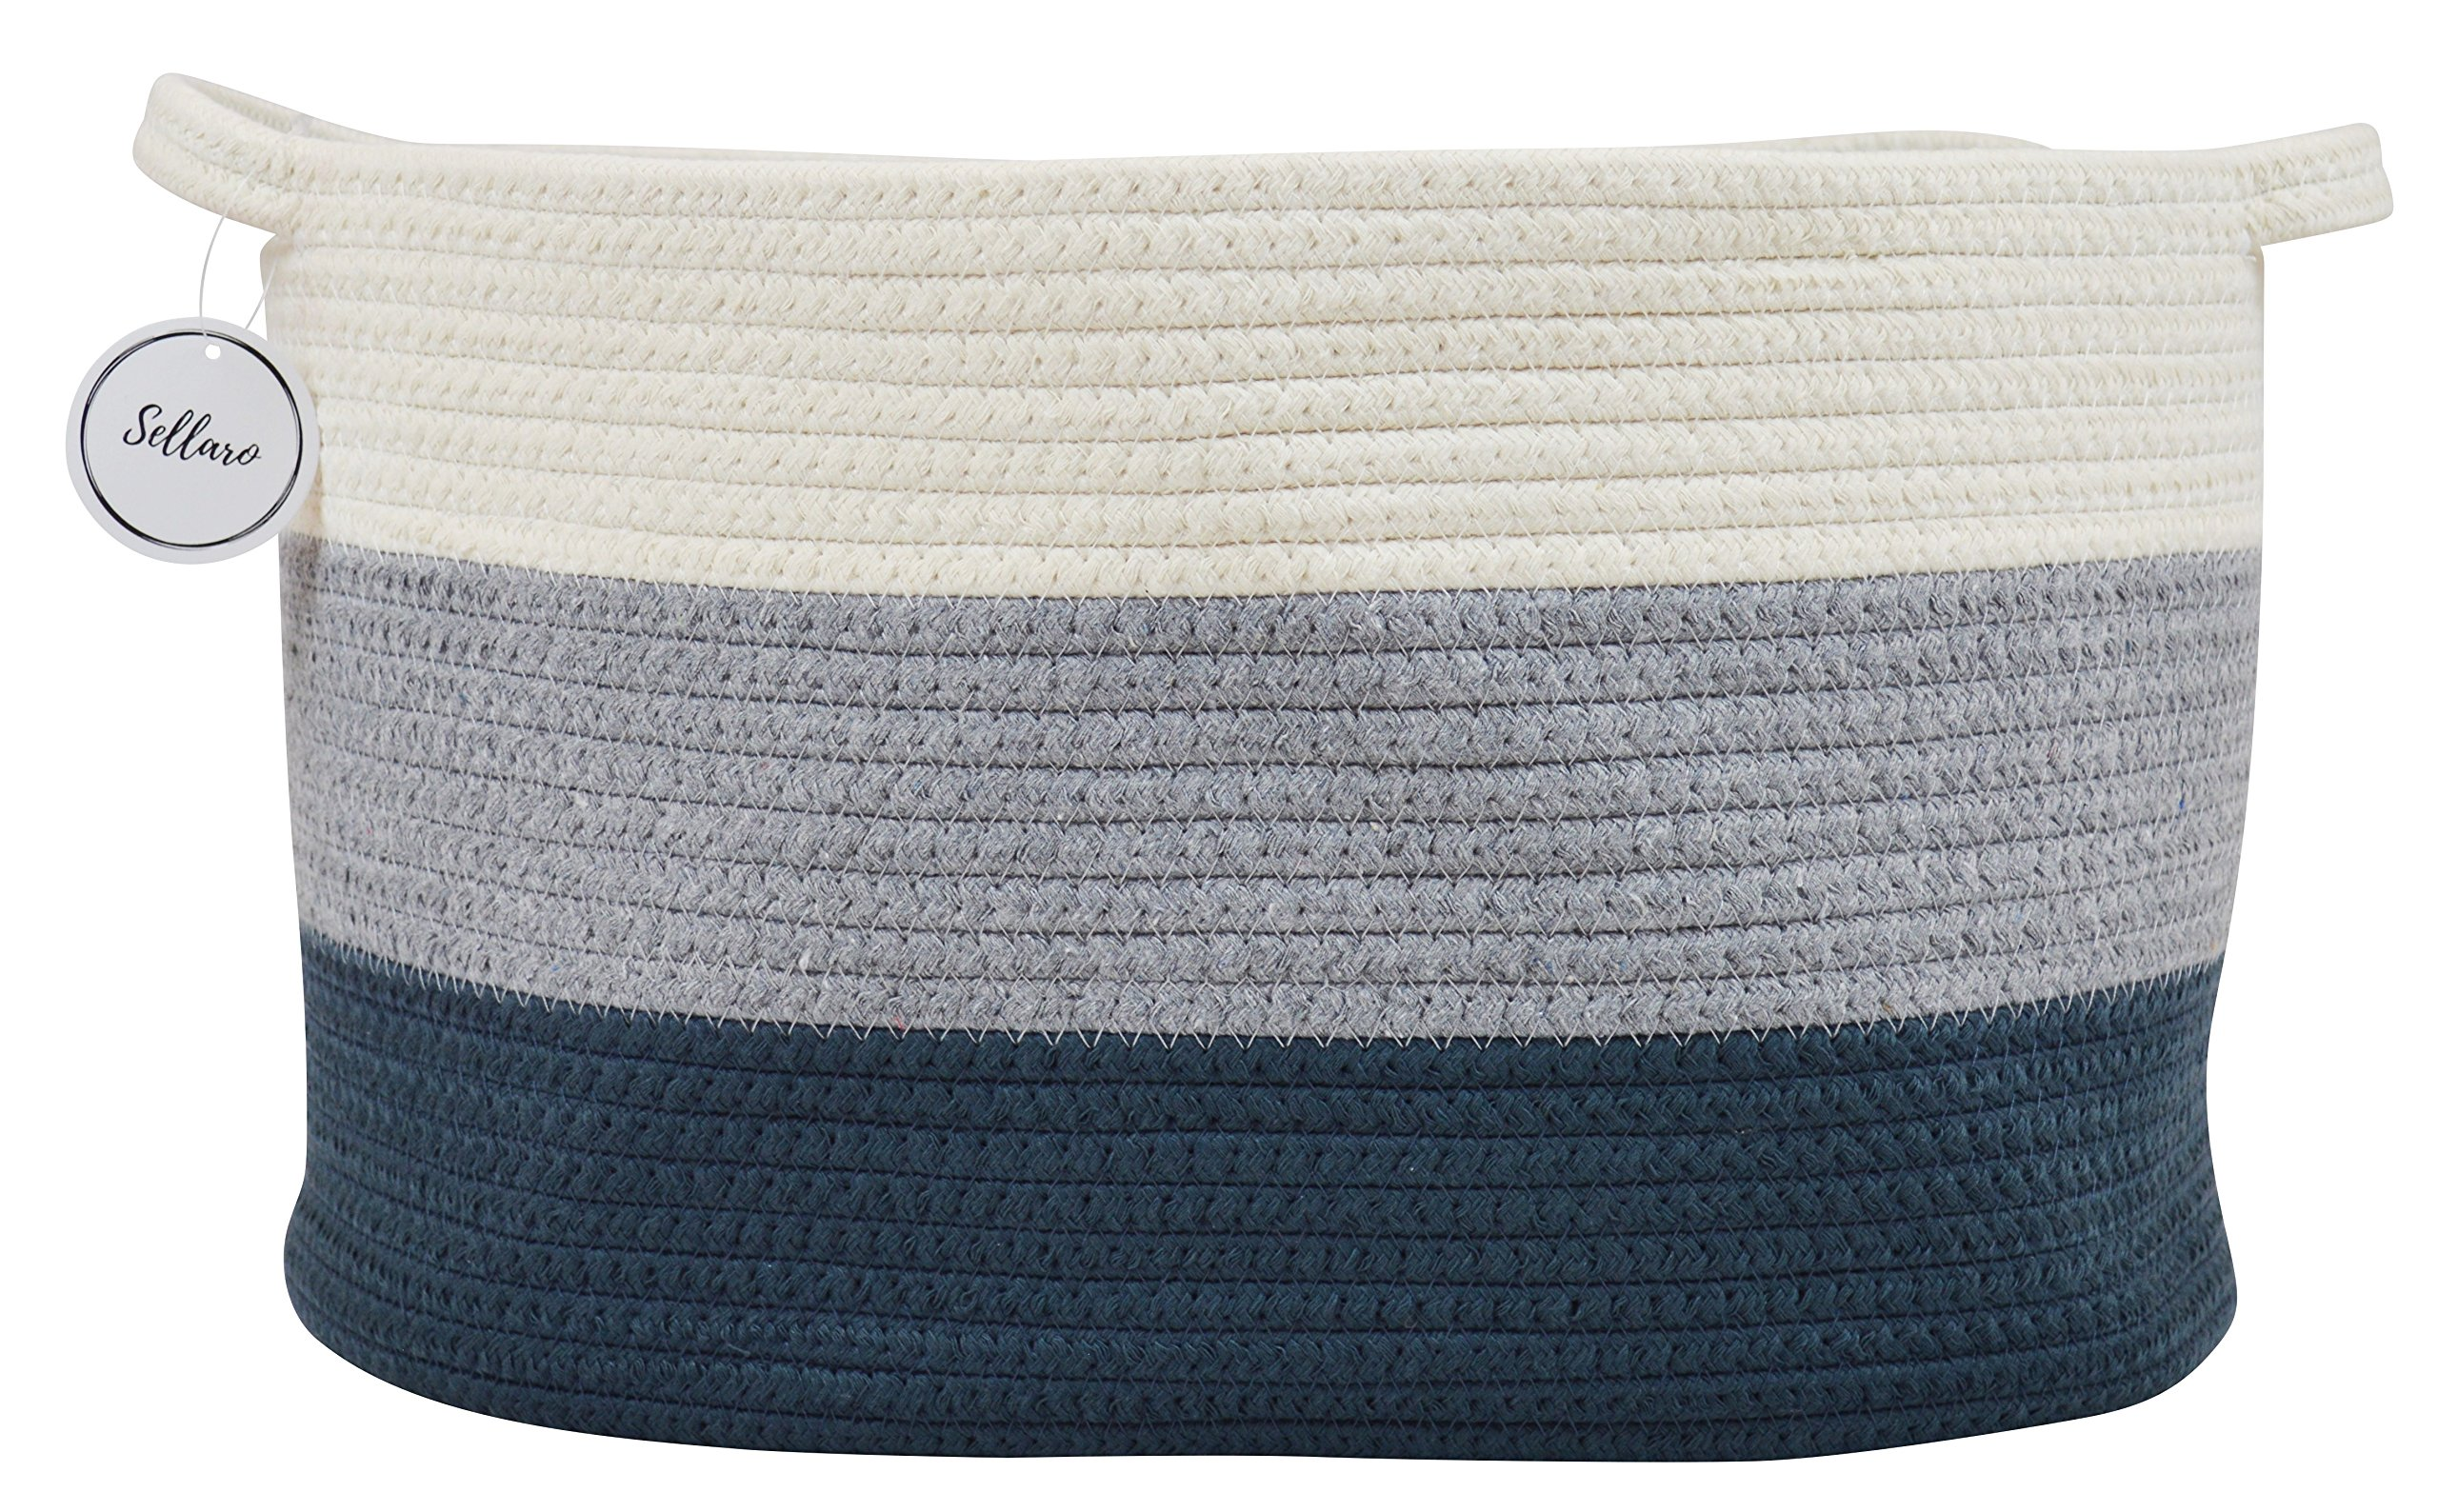 Cotton Rope Basket for Storage and Organization in Baby Nursery or Kids Room | Large 16'' x 11'' x 10'' Decorative Laundry Hamper, Organizer for Blankets, Towels, Toys, Books | Blue/Grey/Off-White by Sellaro Home